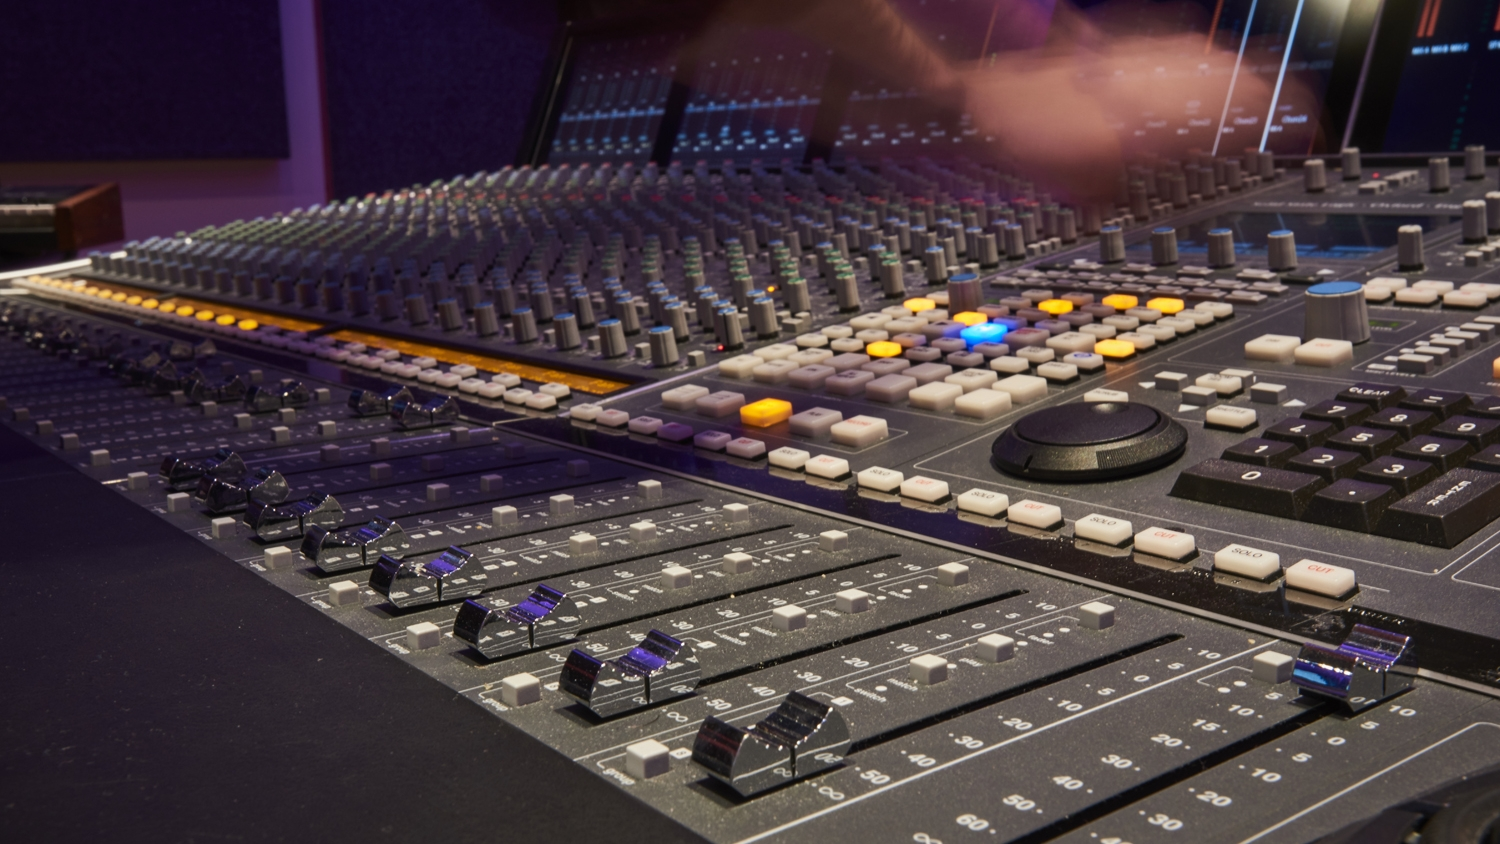 Music Production, Sound Engineering, Audio Technology, Electronic Music | Degree and Diploma Courses in Bristol and Plymouth